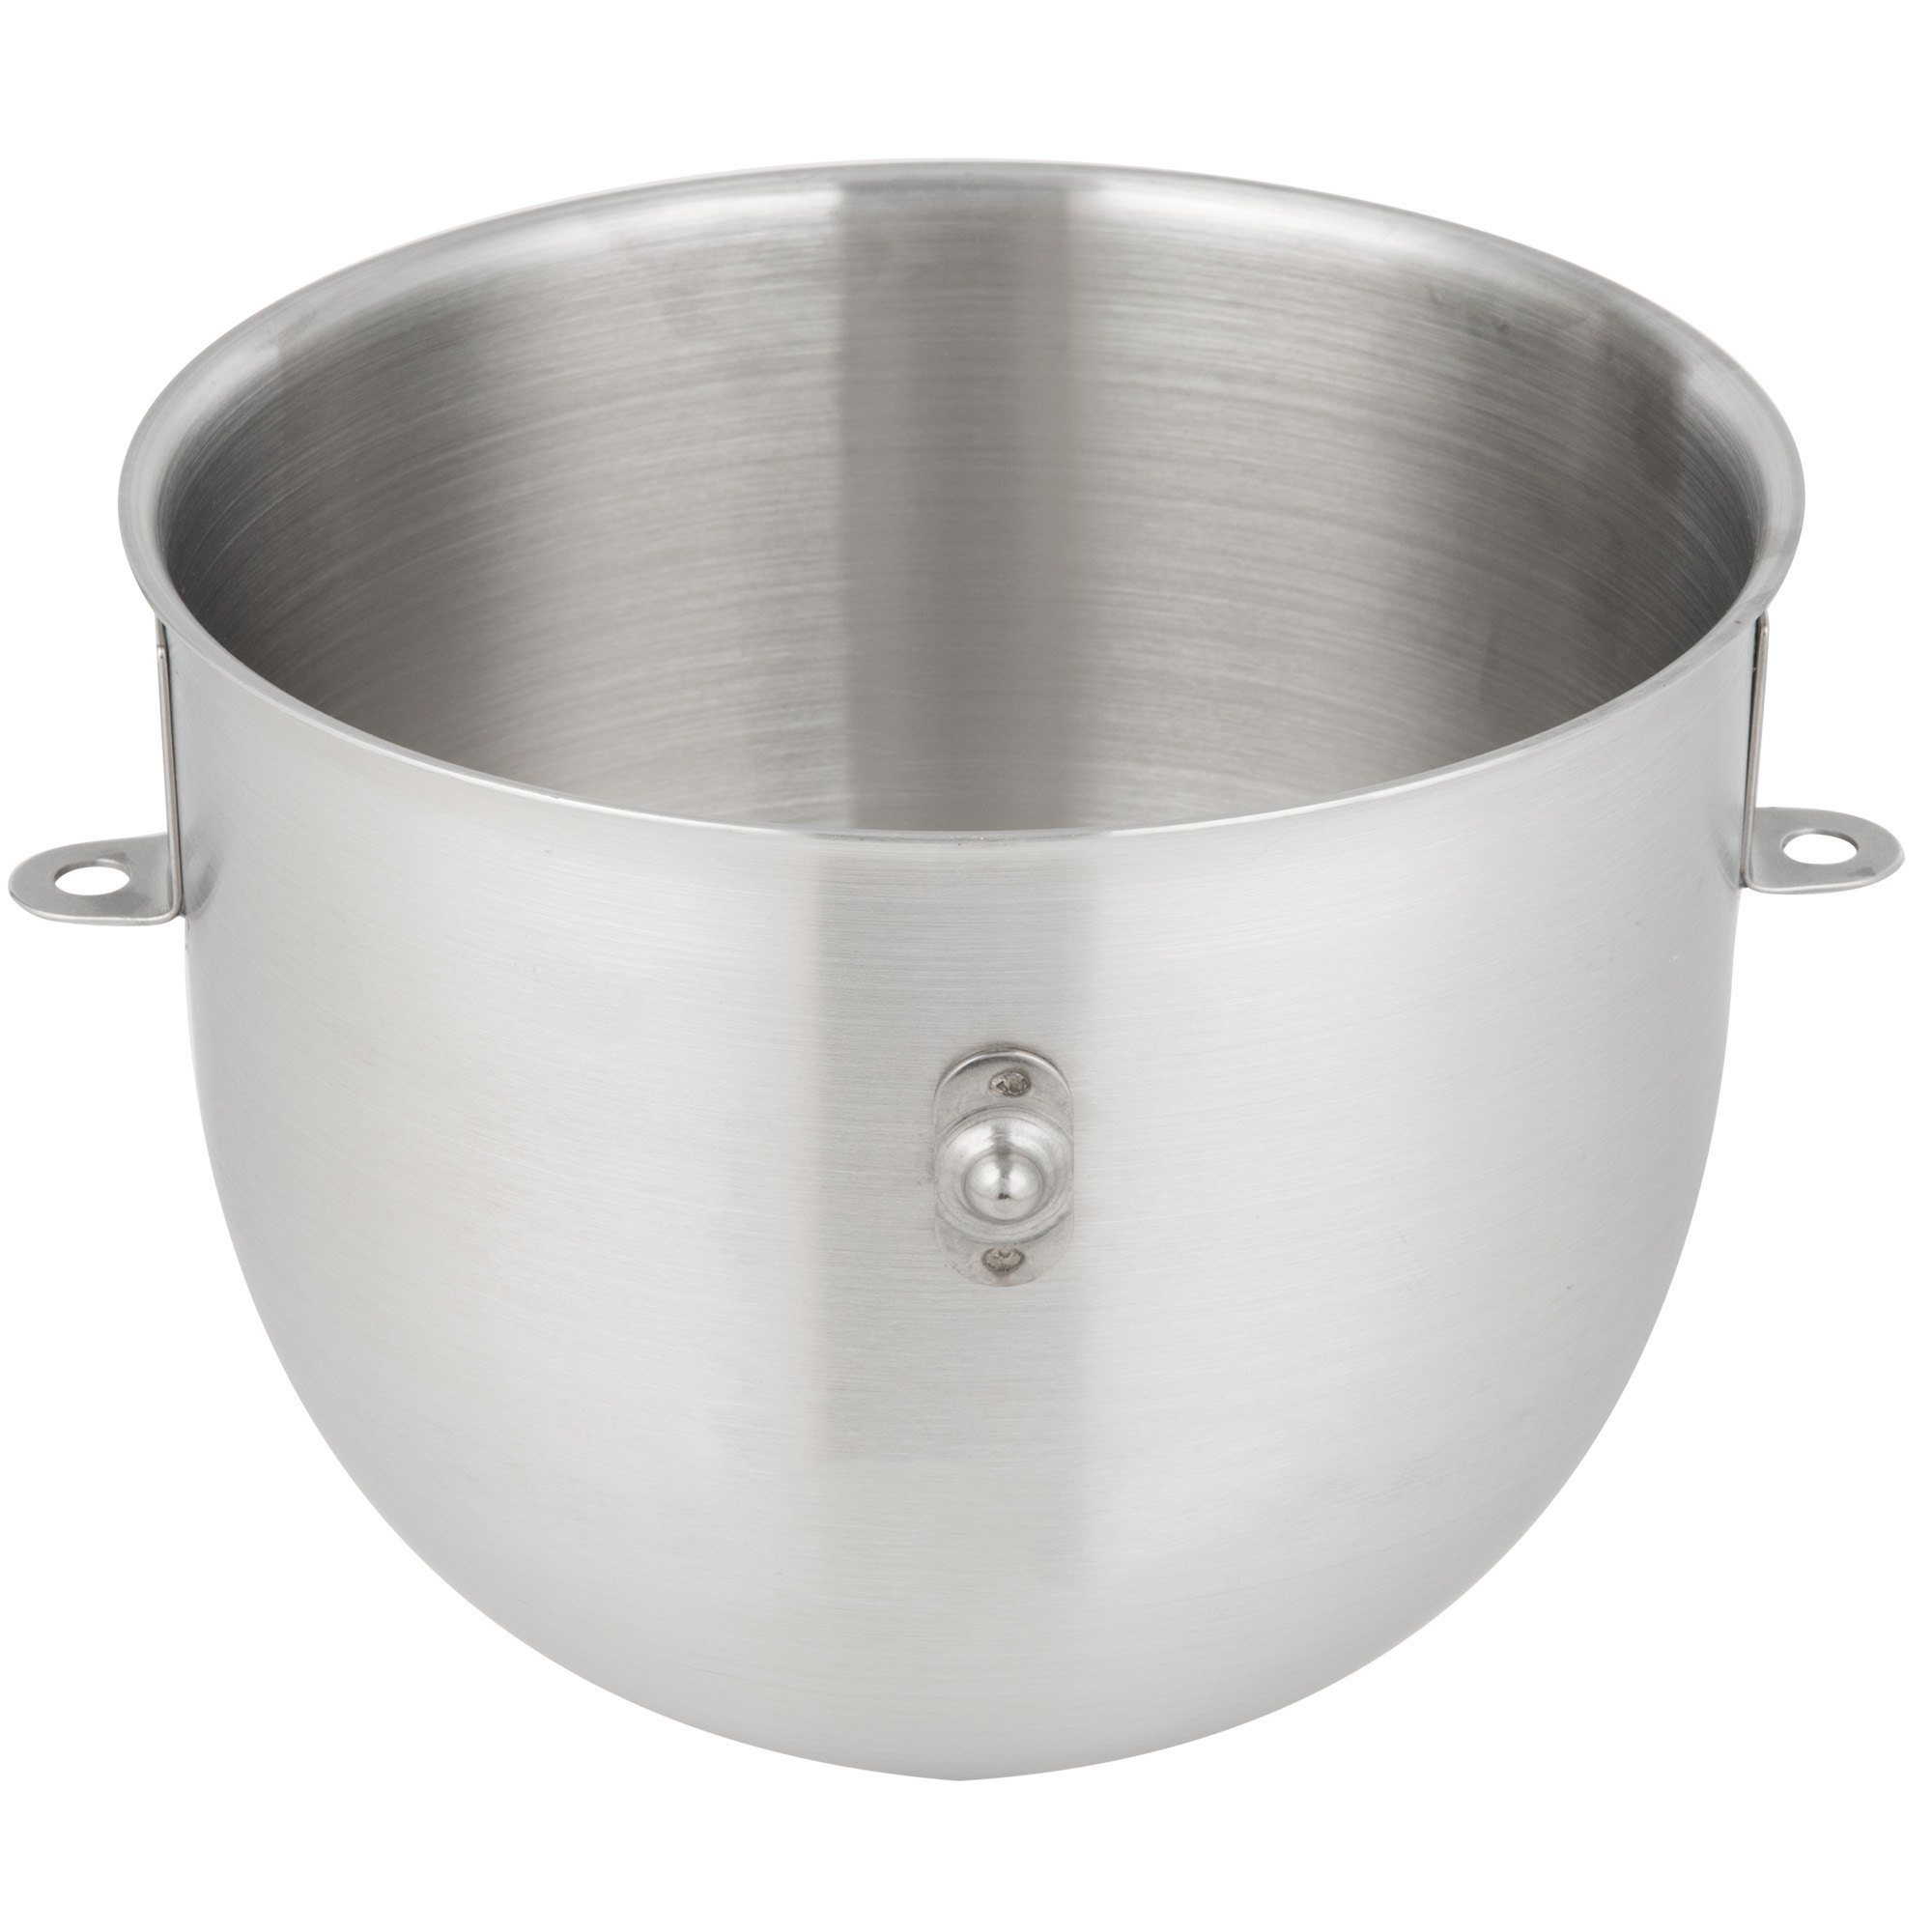 Hobart BOWL-SST005 N50 5 Qt. Stainless Steel Mixing Bowl